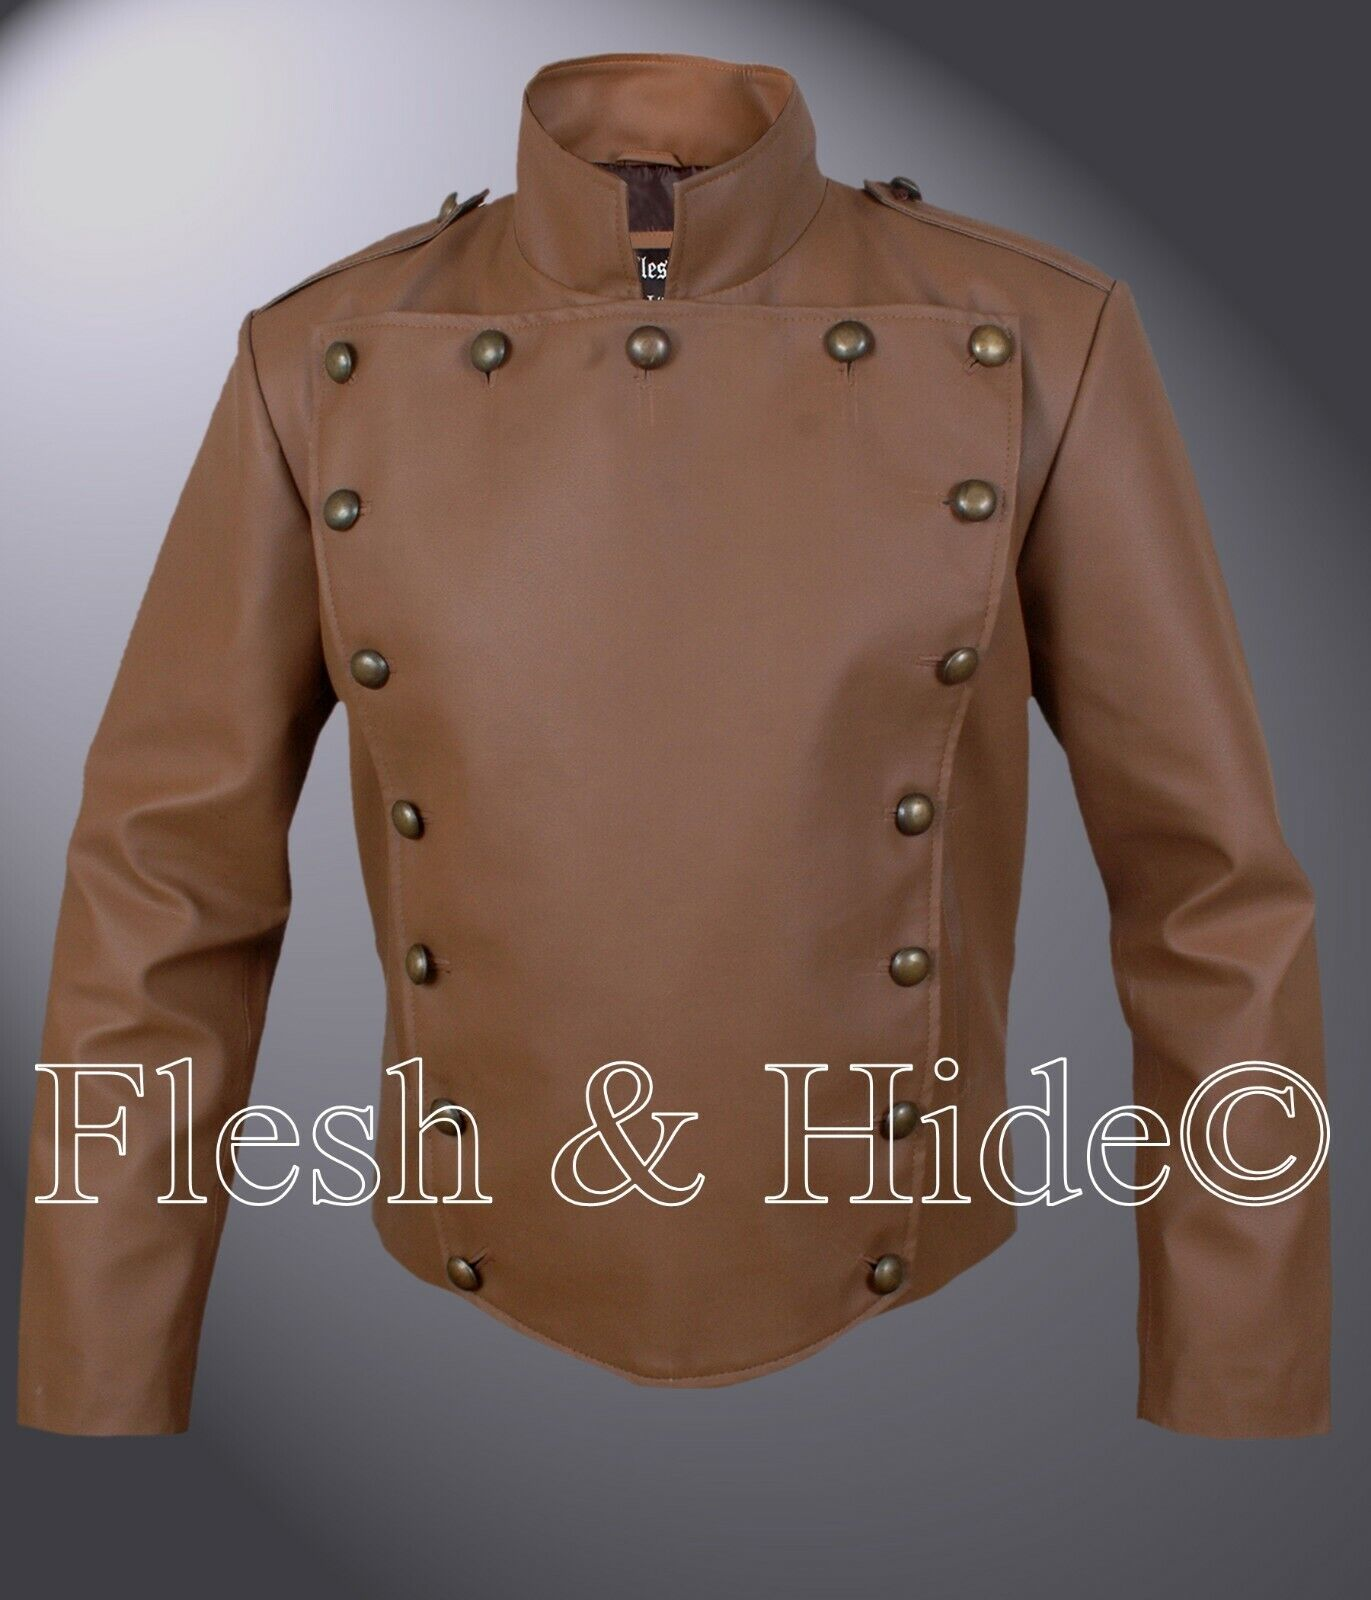 Billy Campbell Cliff Secord The Rocketeer Jacket in Tan braun